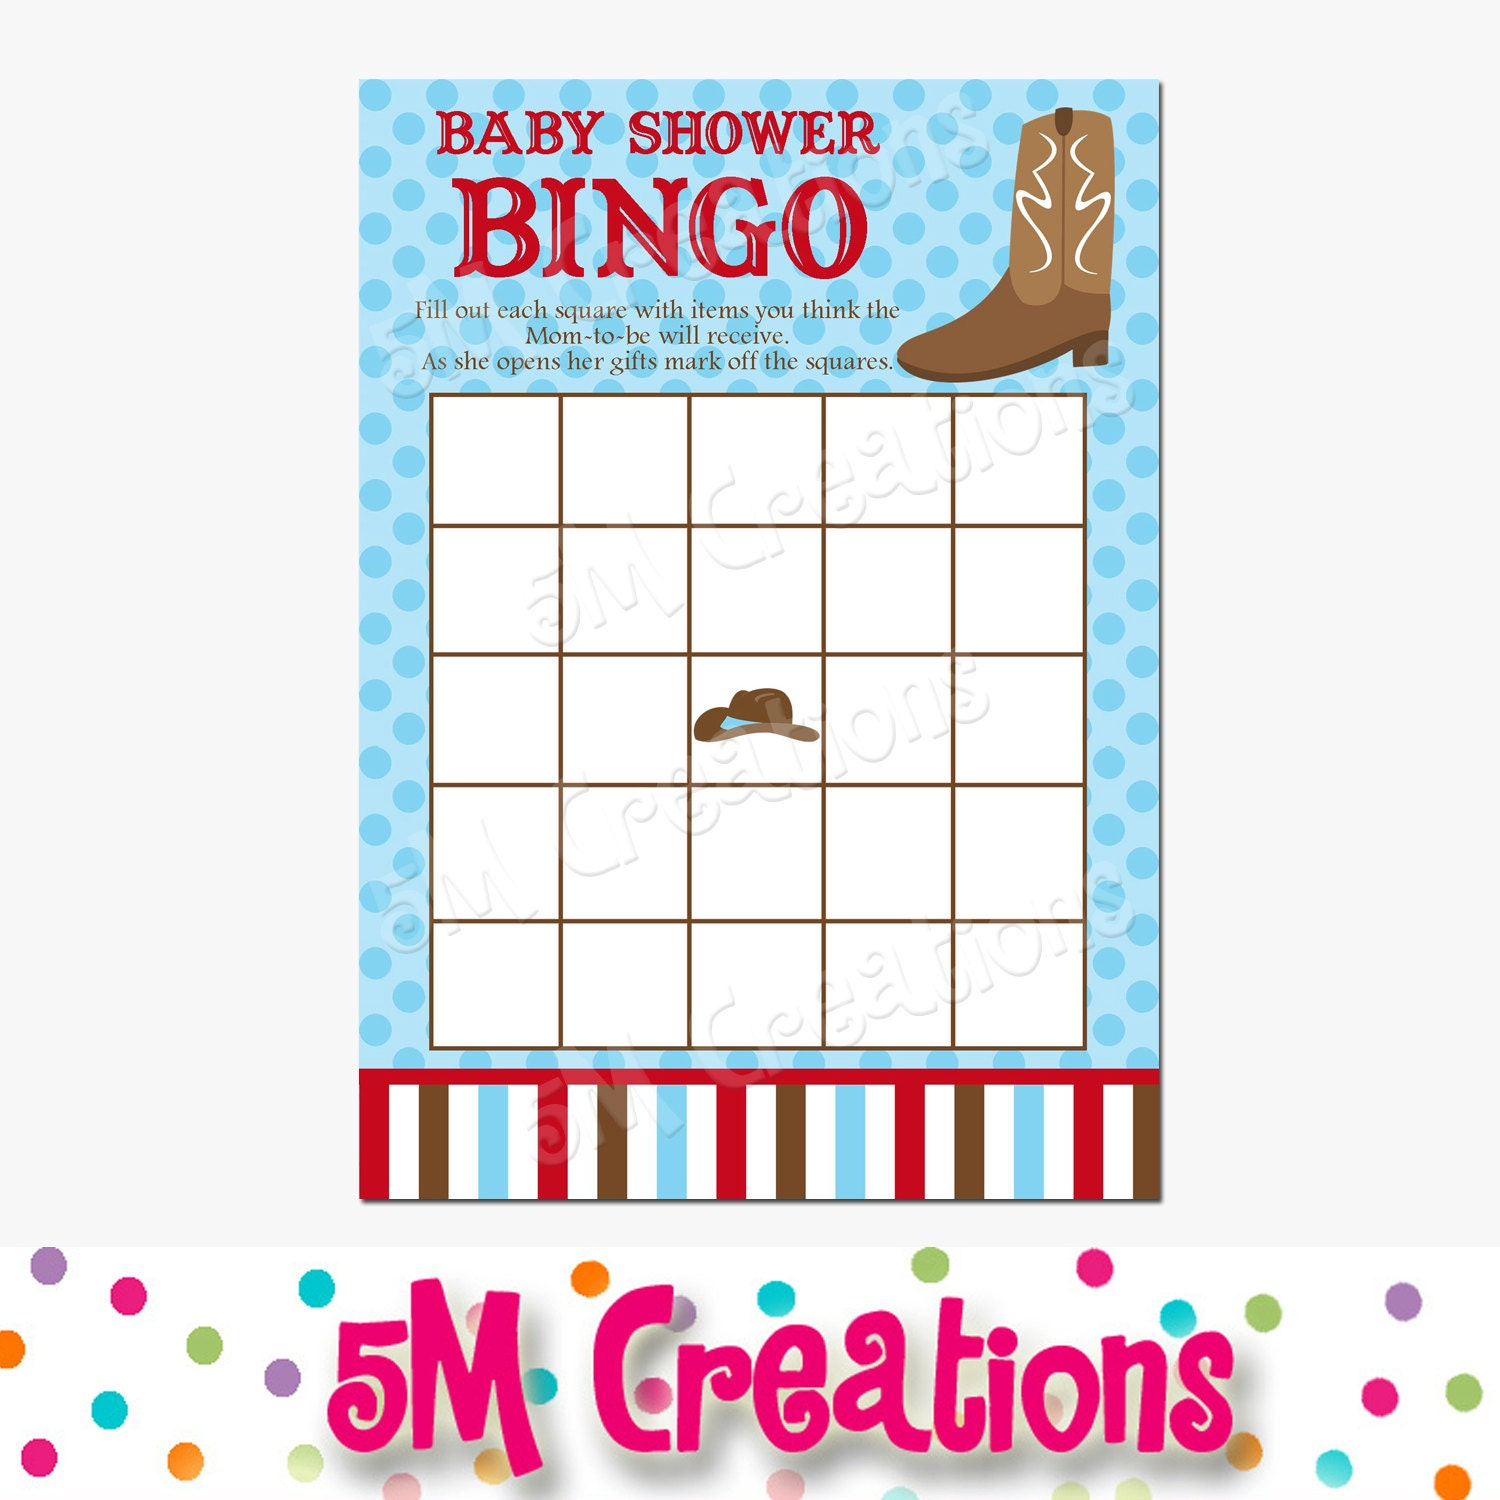 baby shower bingo card cowboy party cowboy baby shower